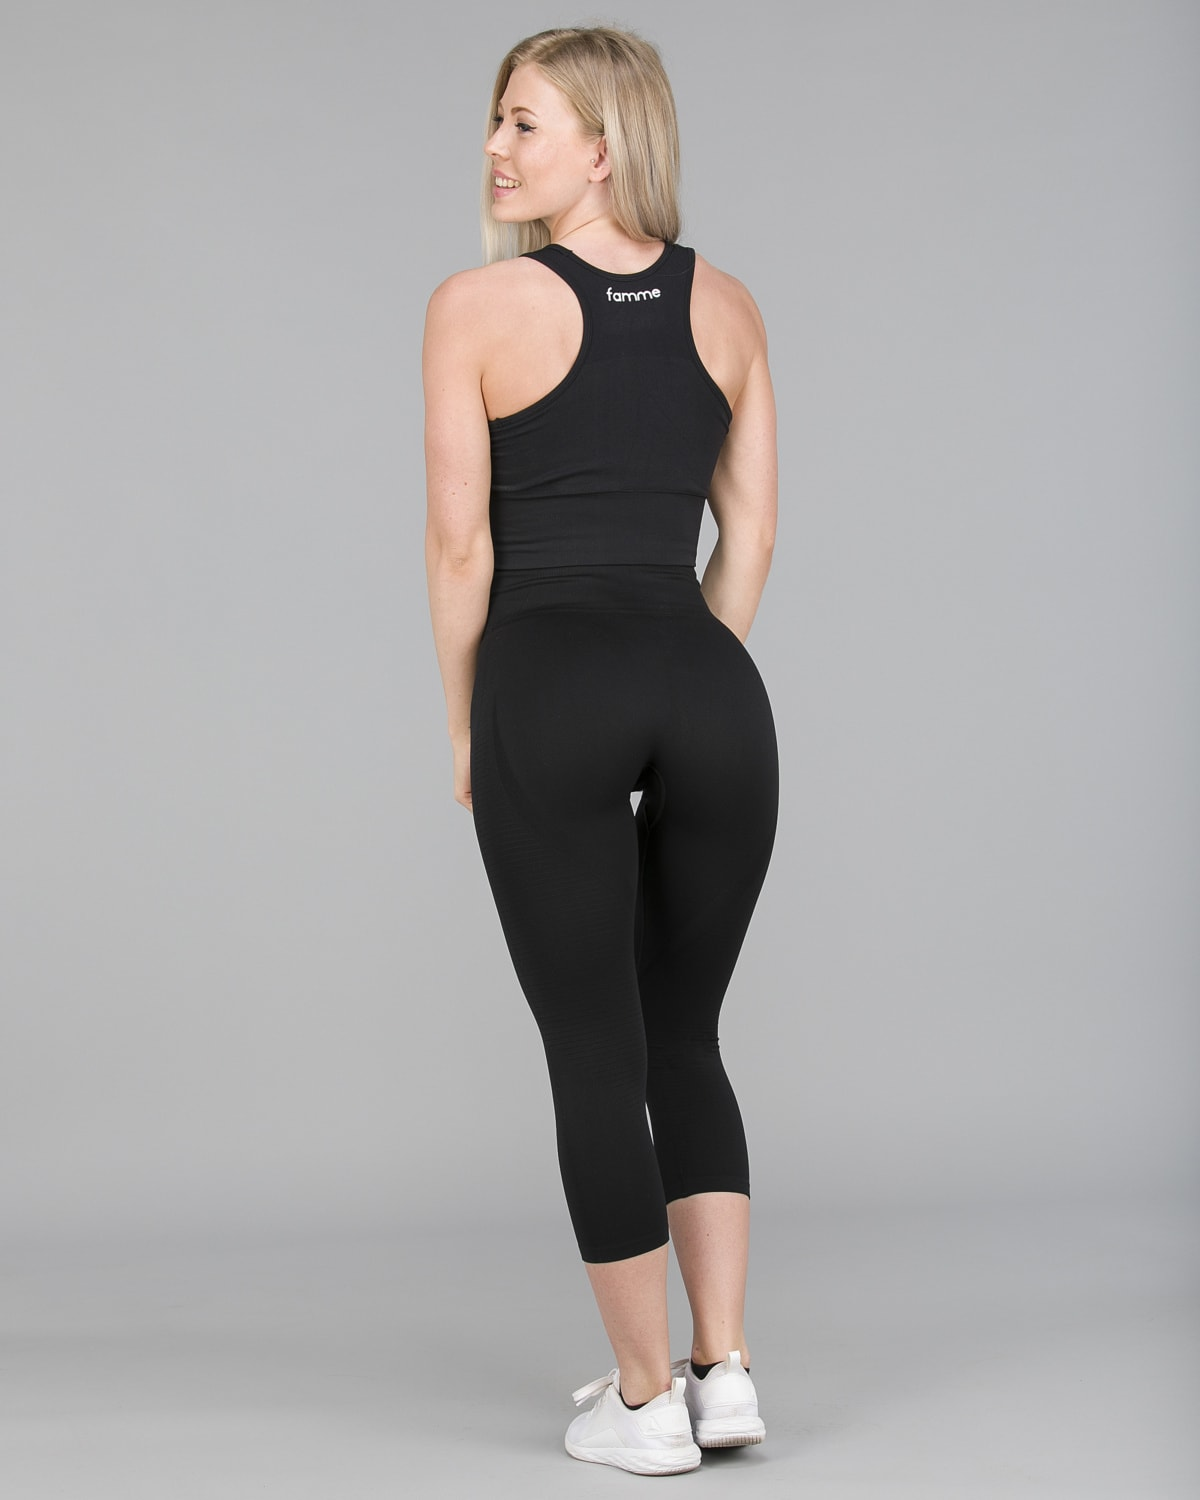 FAMME – Vortex Leggings 7:8 – Black5